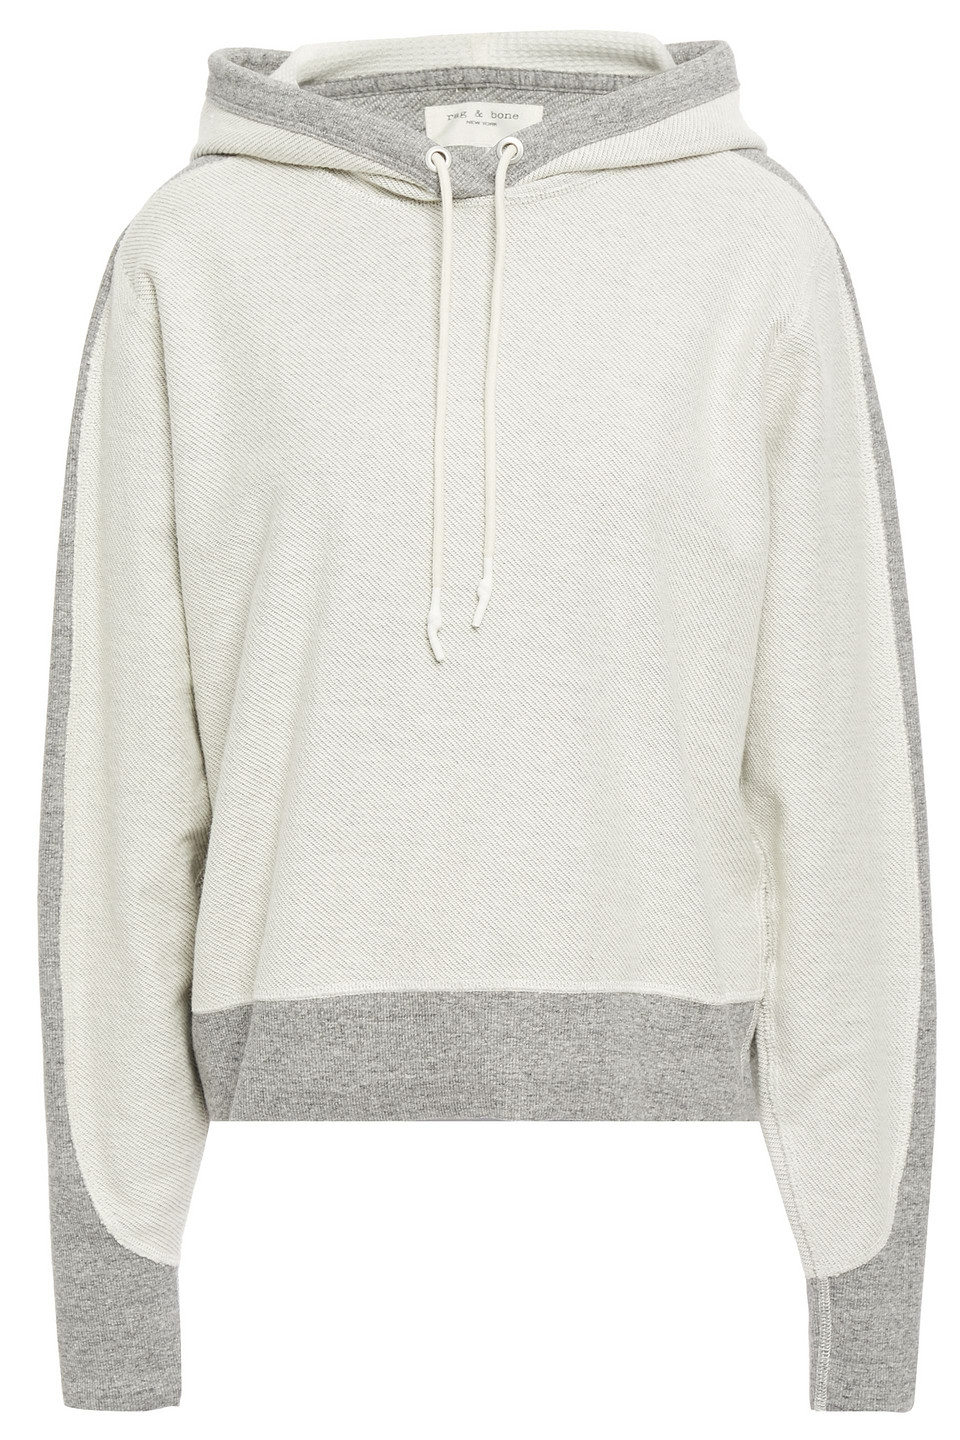 RAG & BONE | Rag & Bone Woman Utility Two-tone Cotton-terry Hoodie Off-white | Clouty